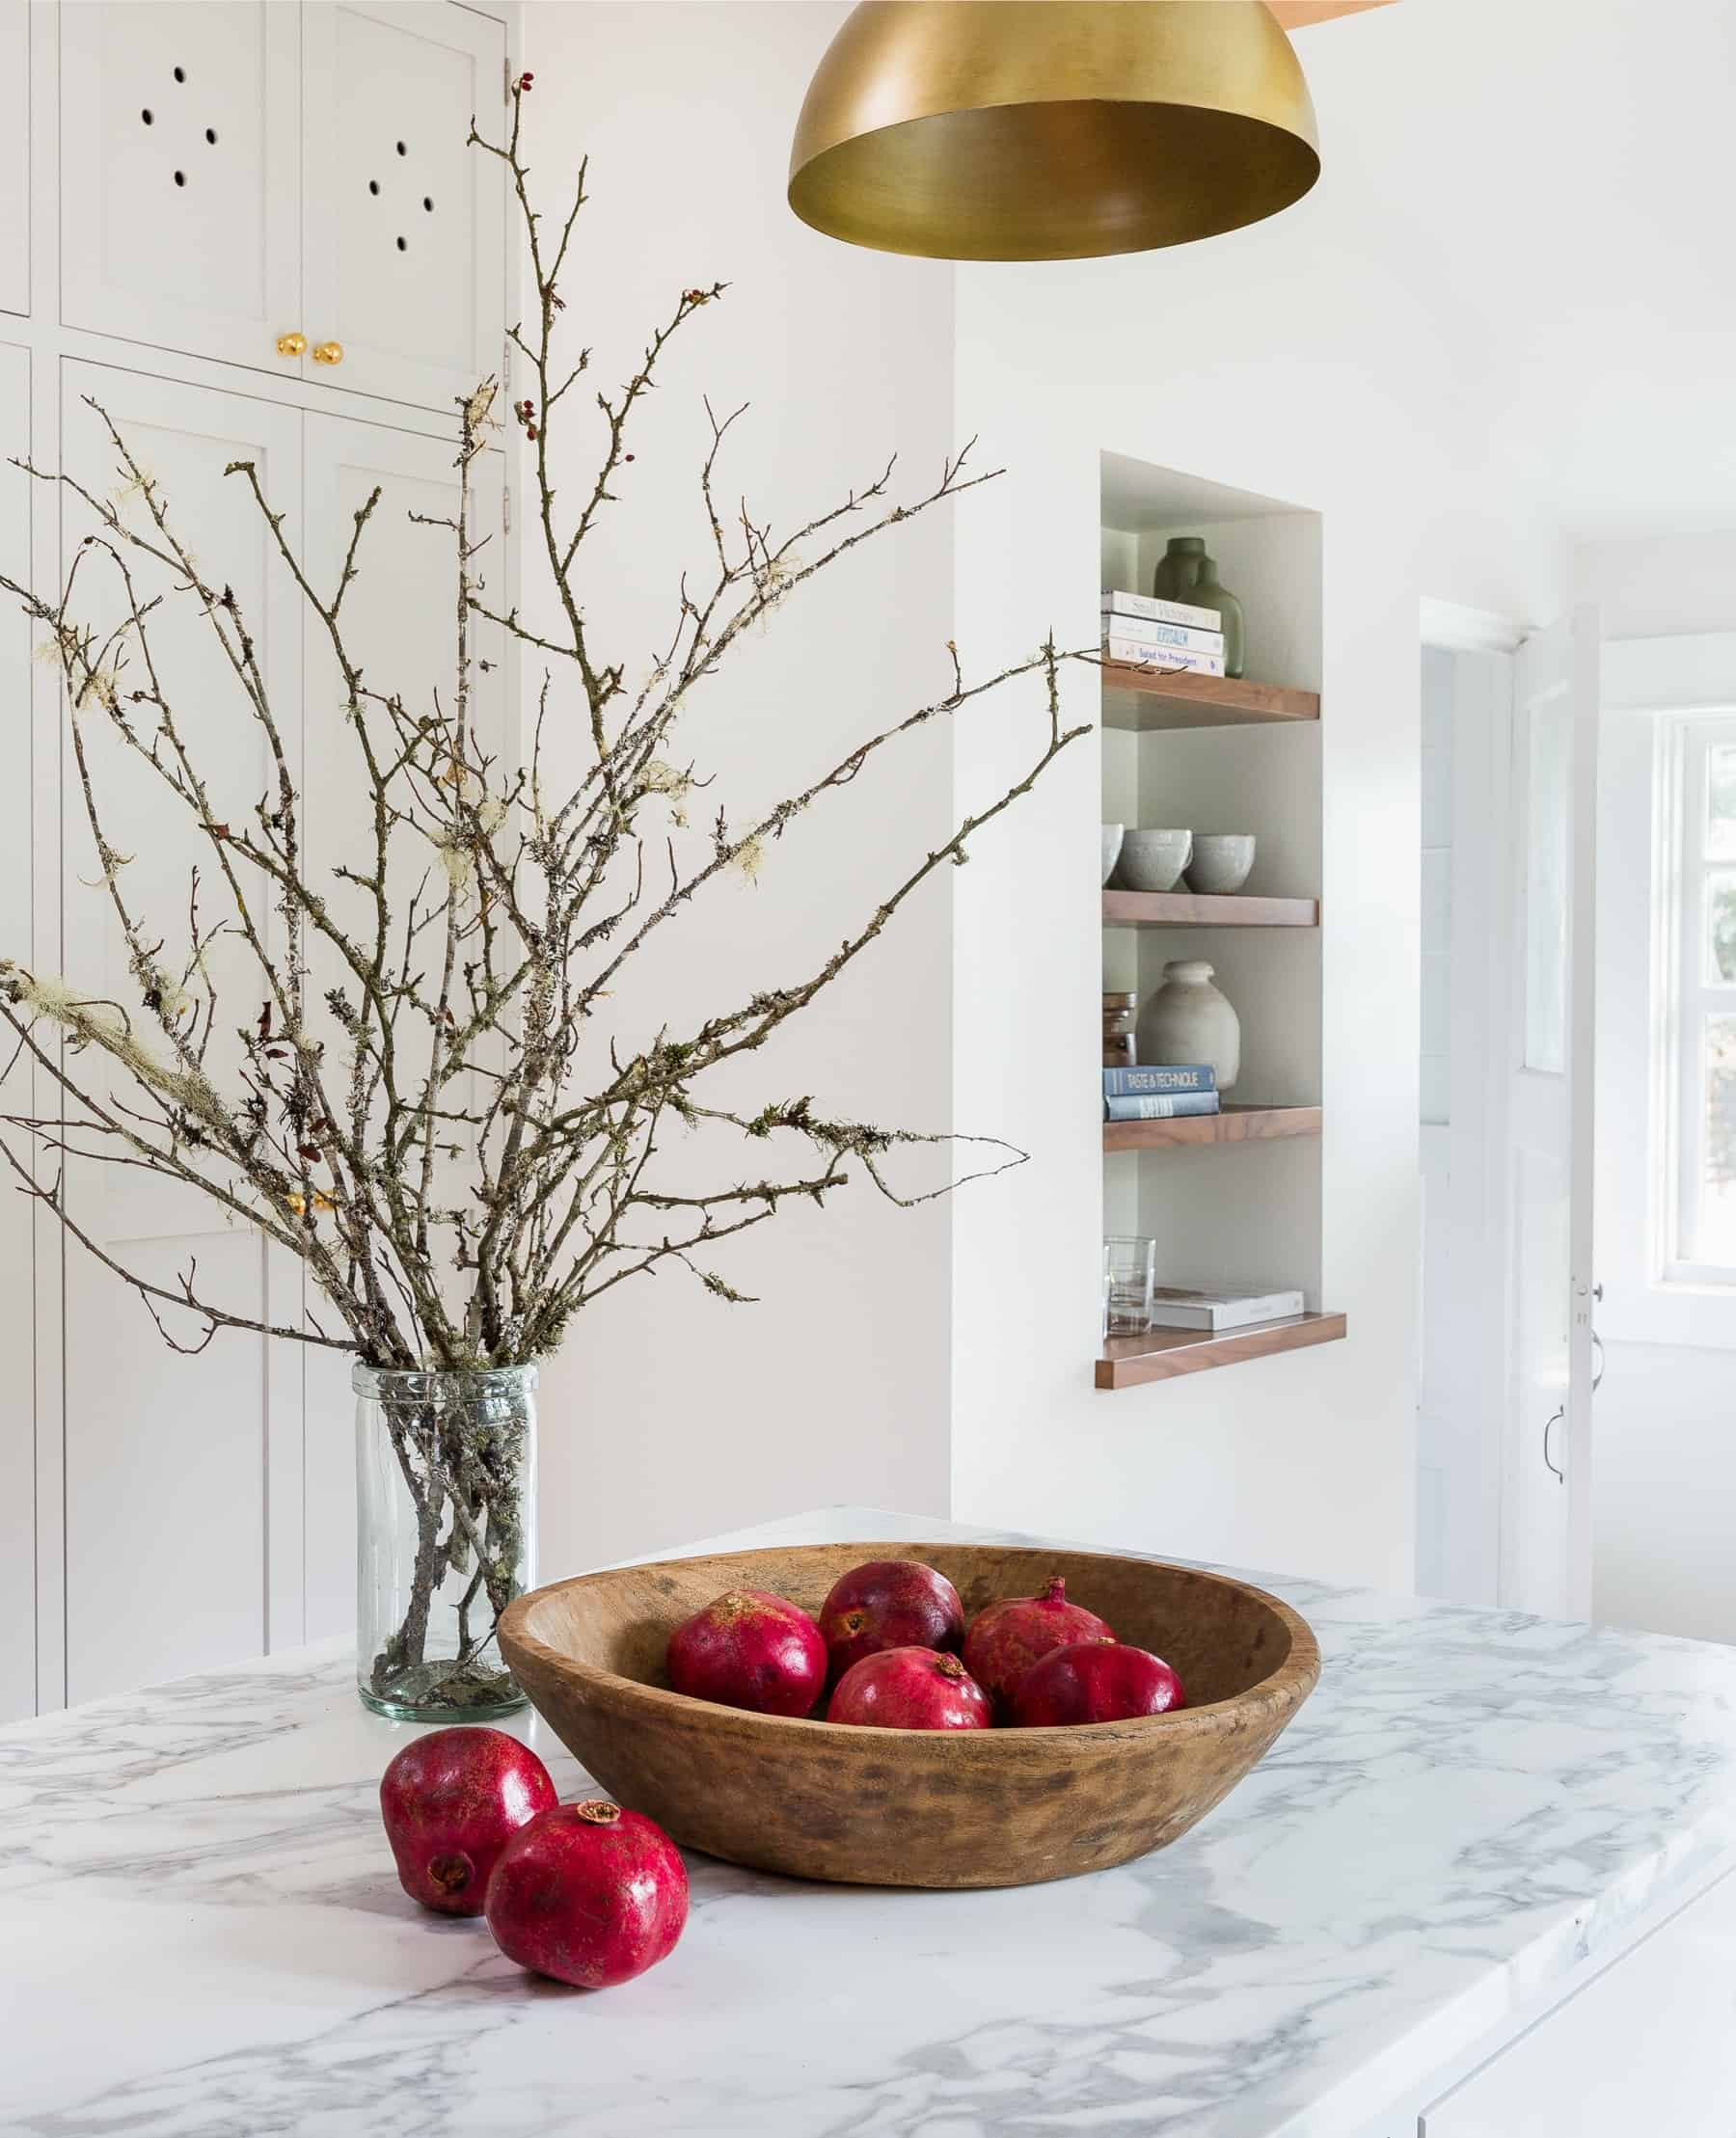 large vase with twigs stems and large round fruit bowl